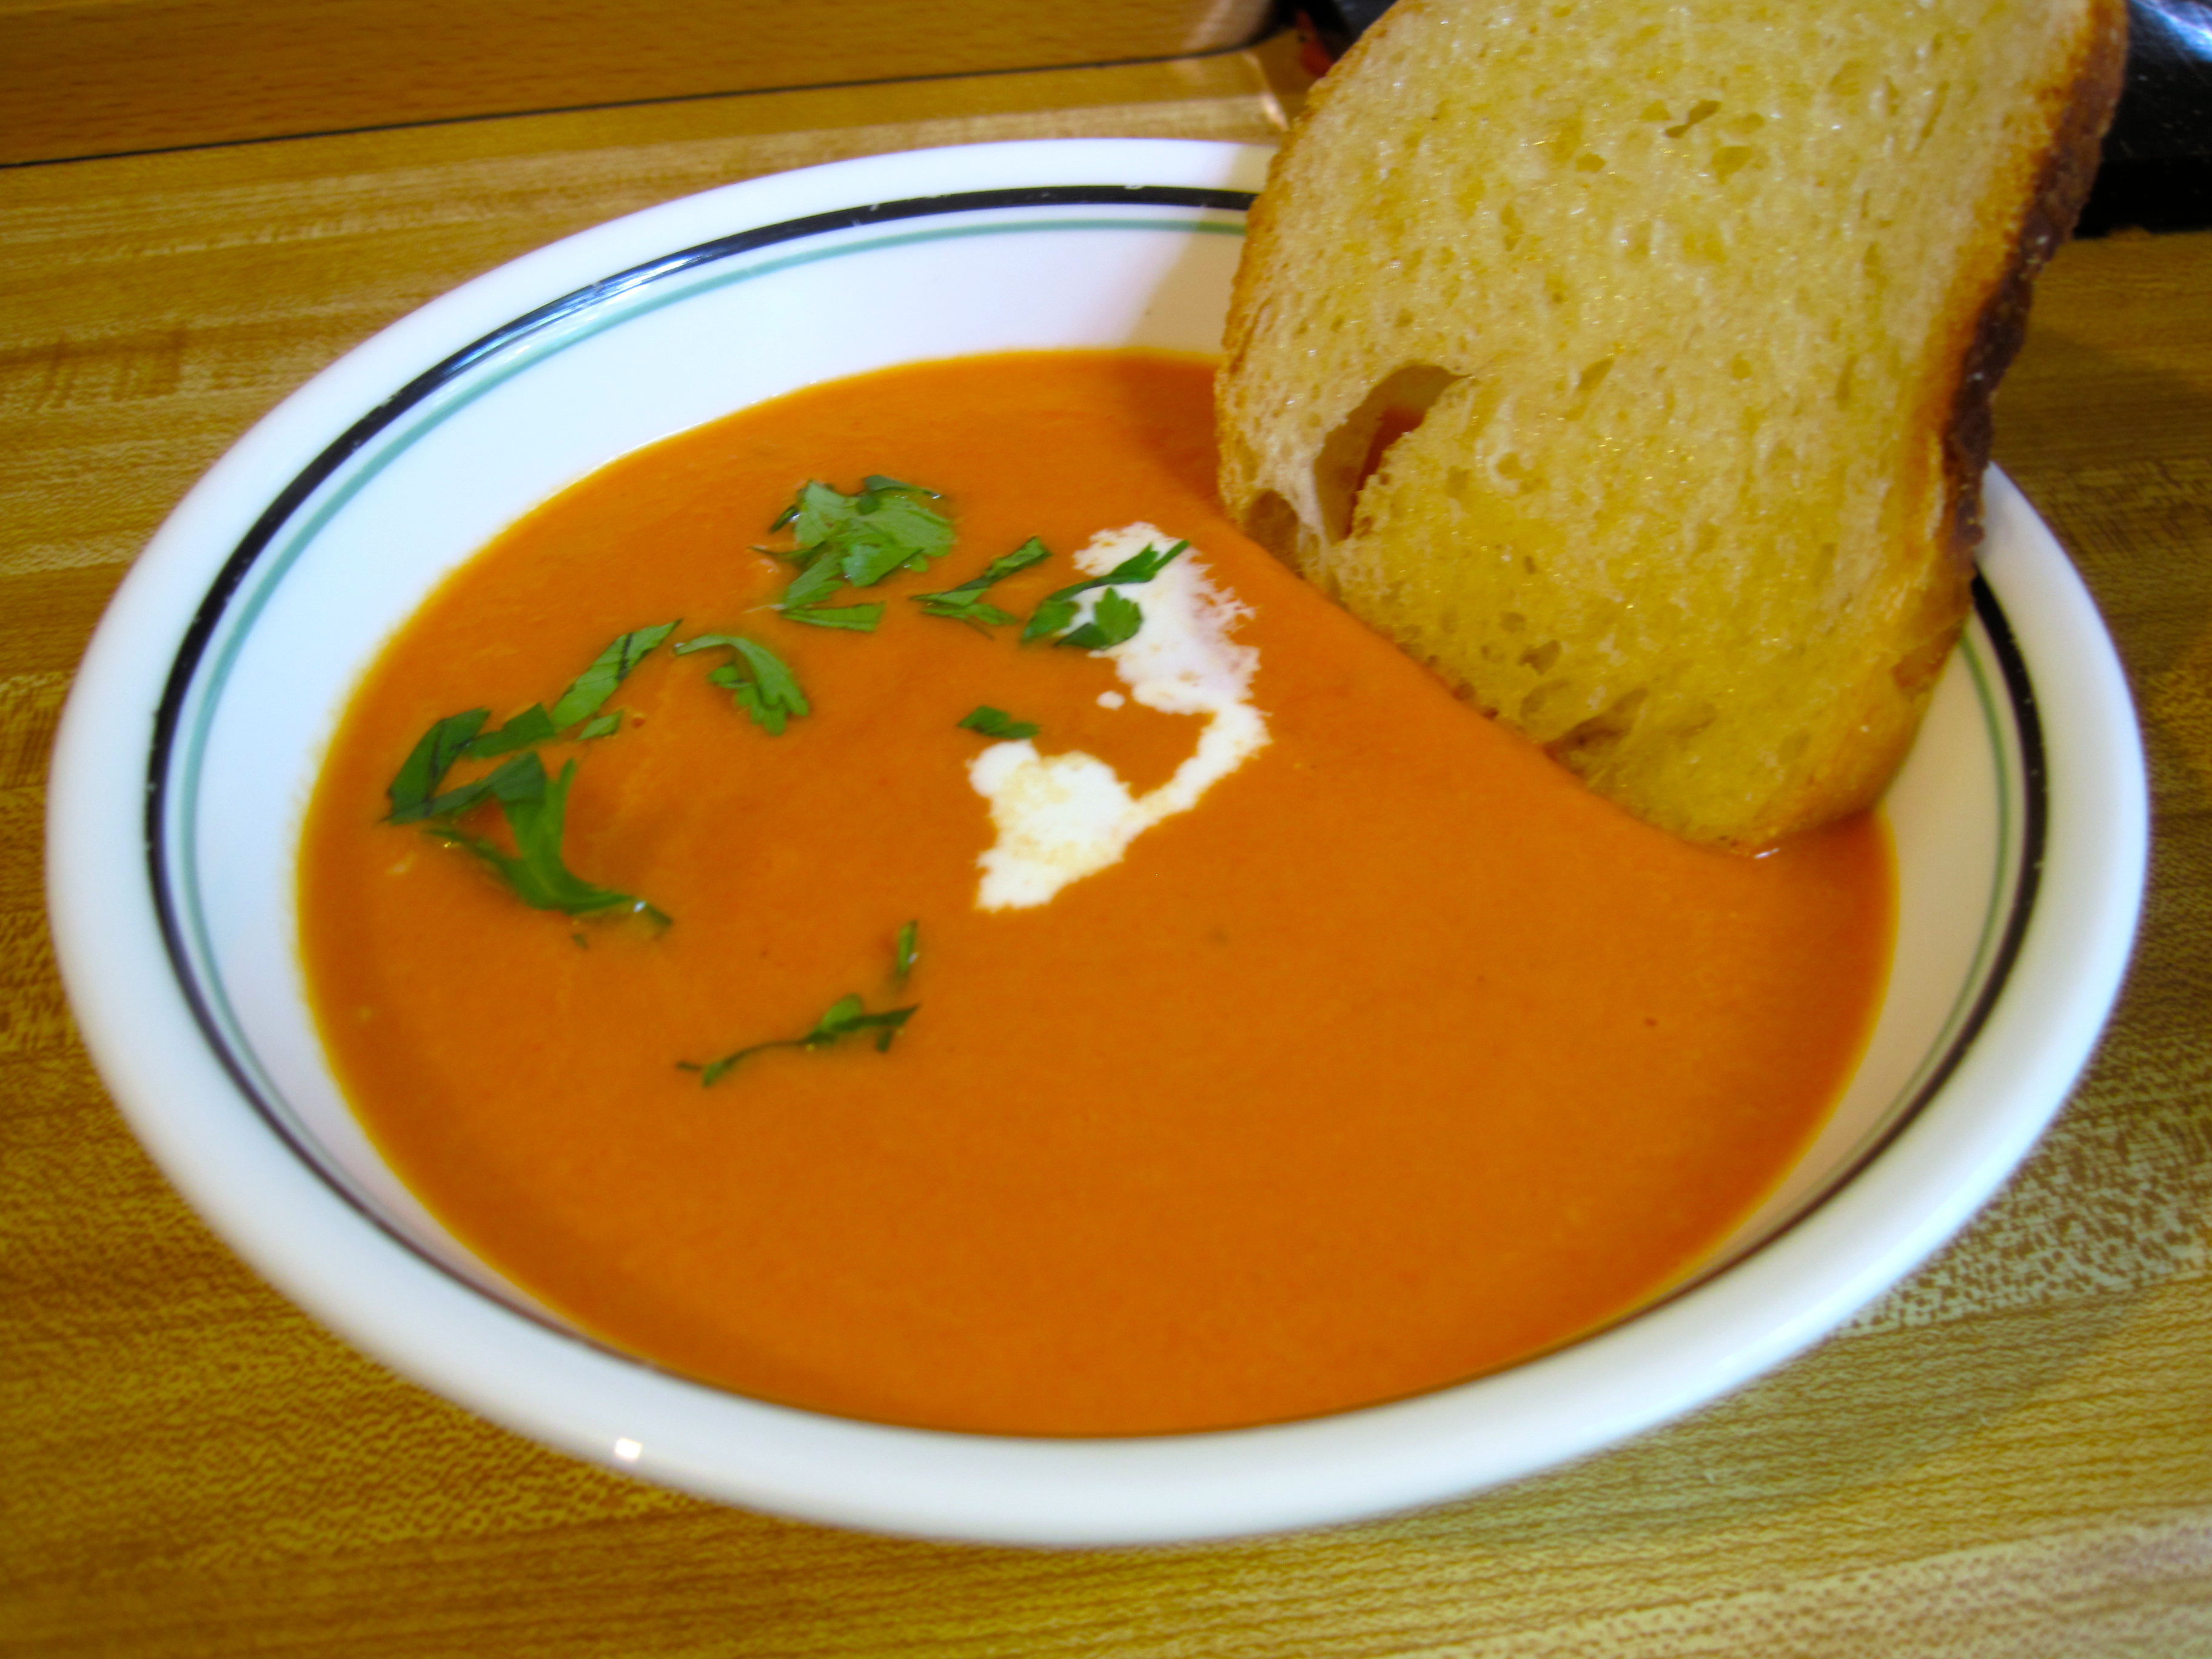 ... tomato soup egyptian tomato soup roasted tomato soup cream of tomato